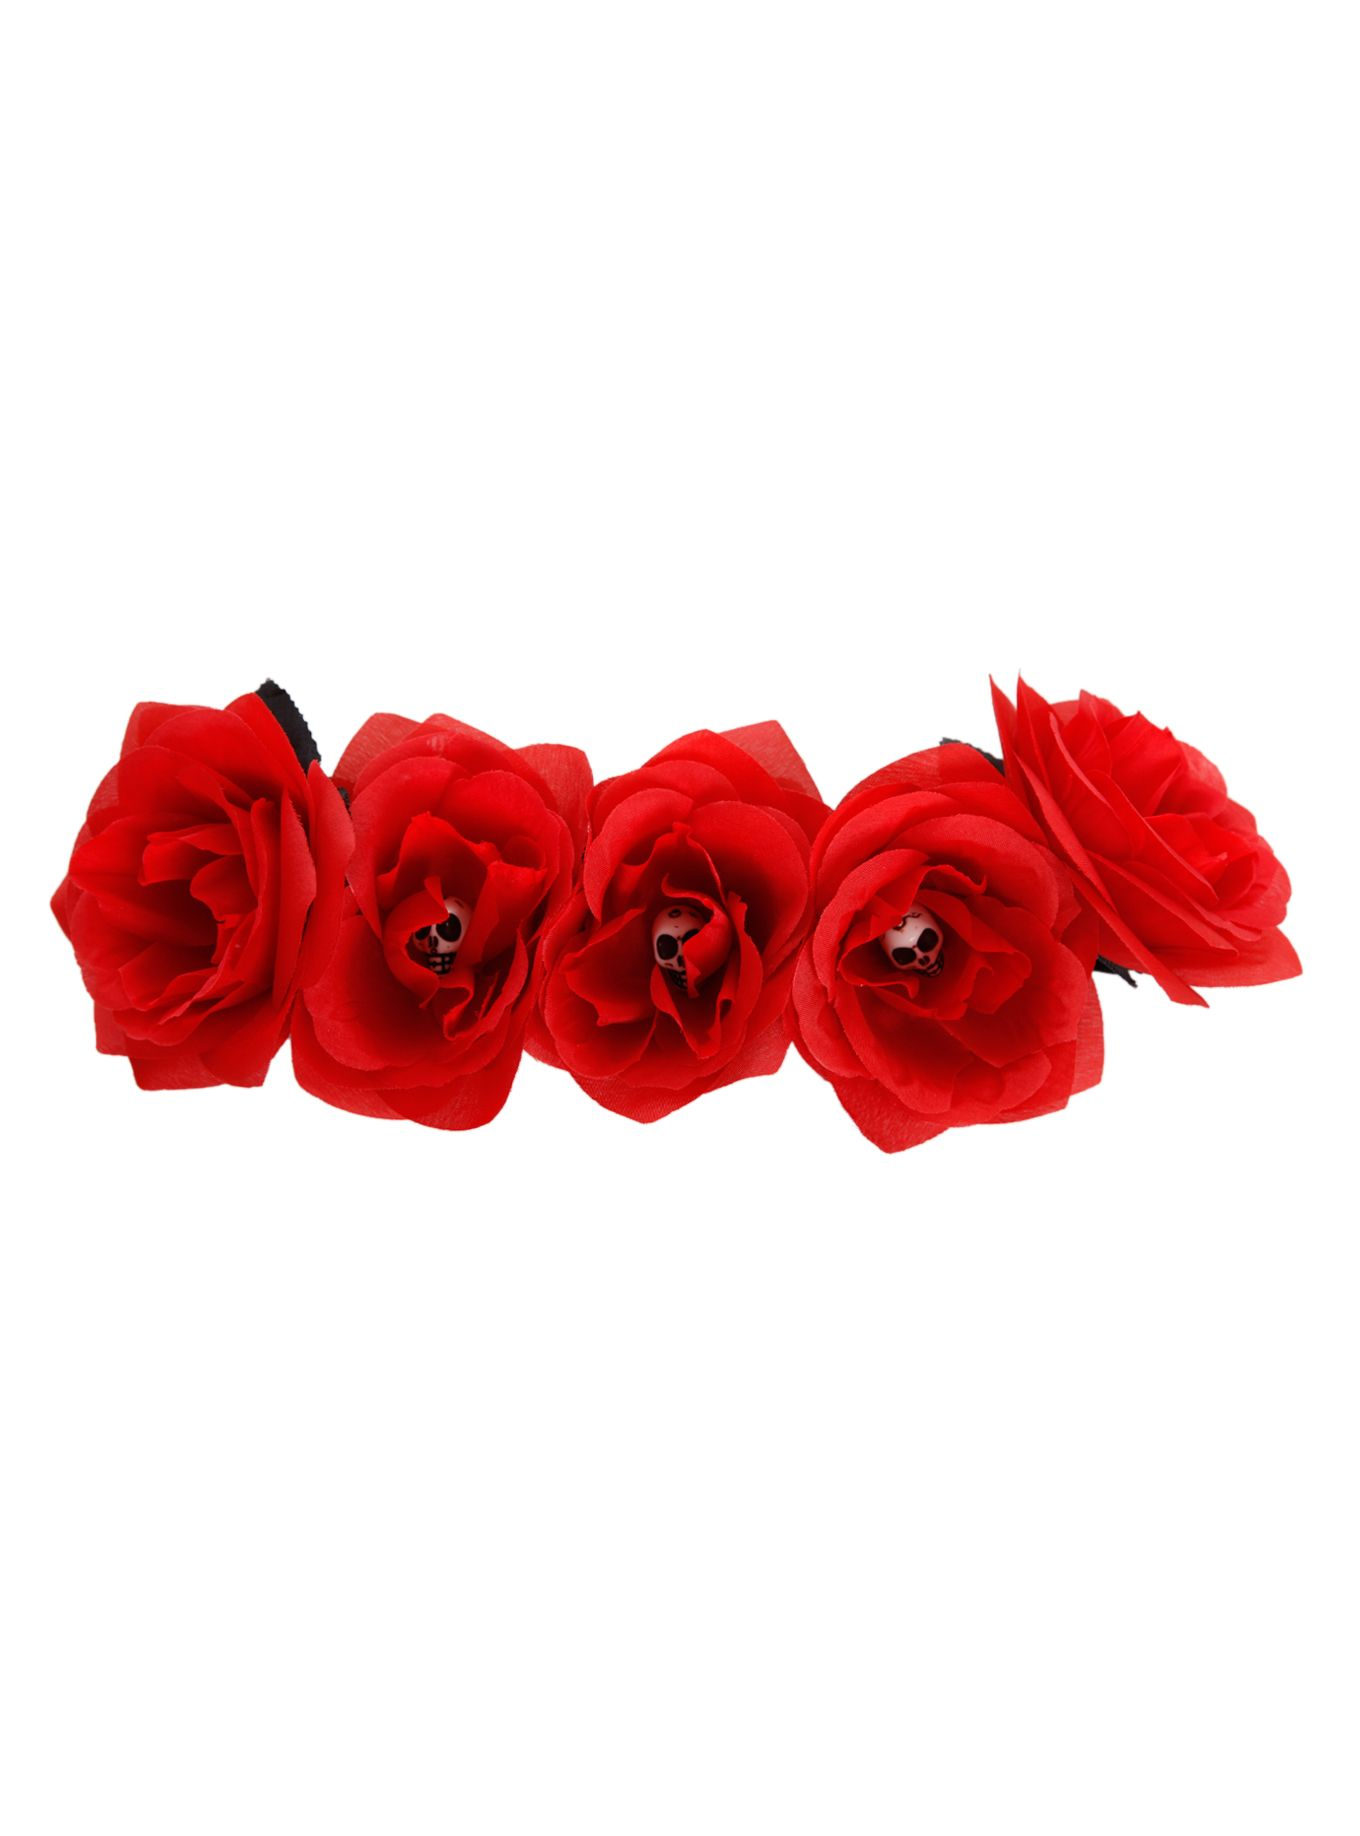 Red Rose And Skull Stretch Headband Hot Topic Flower Crowns